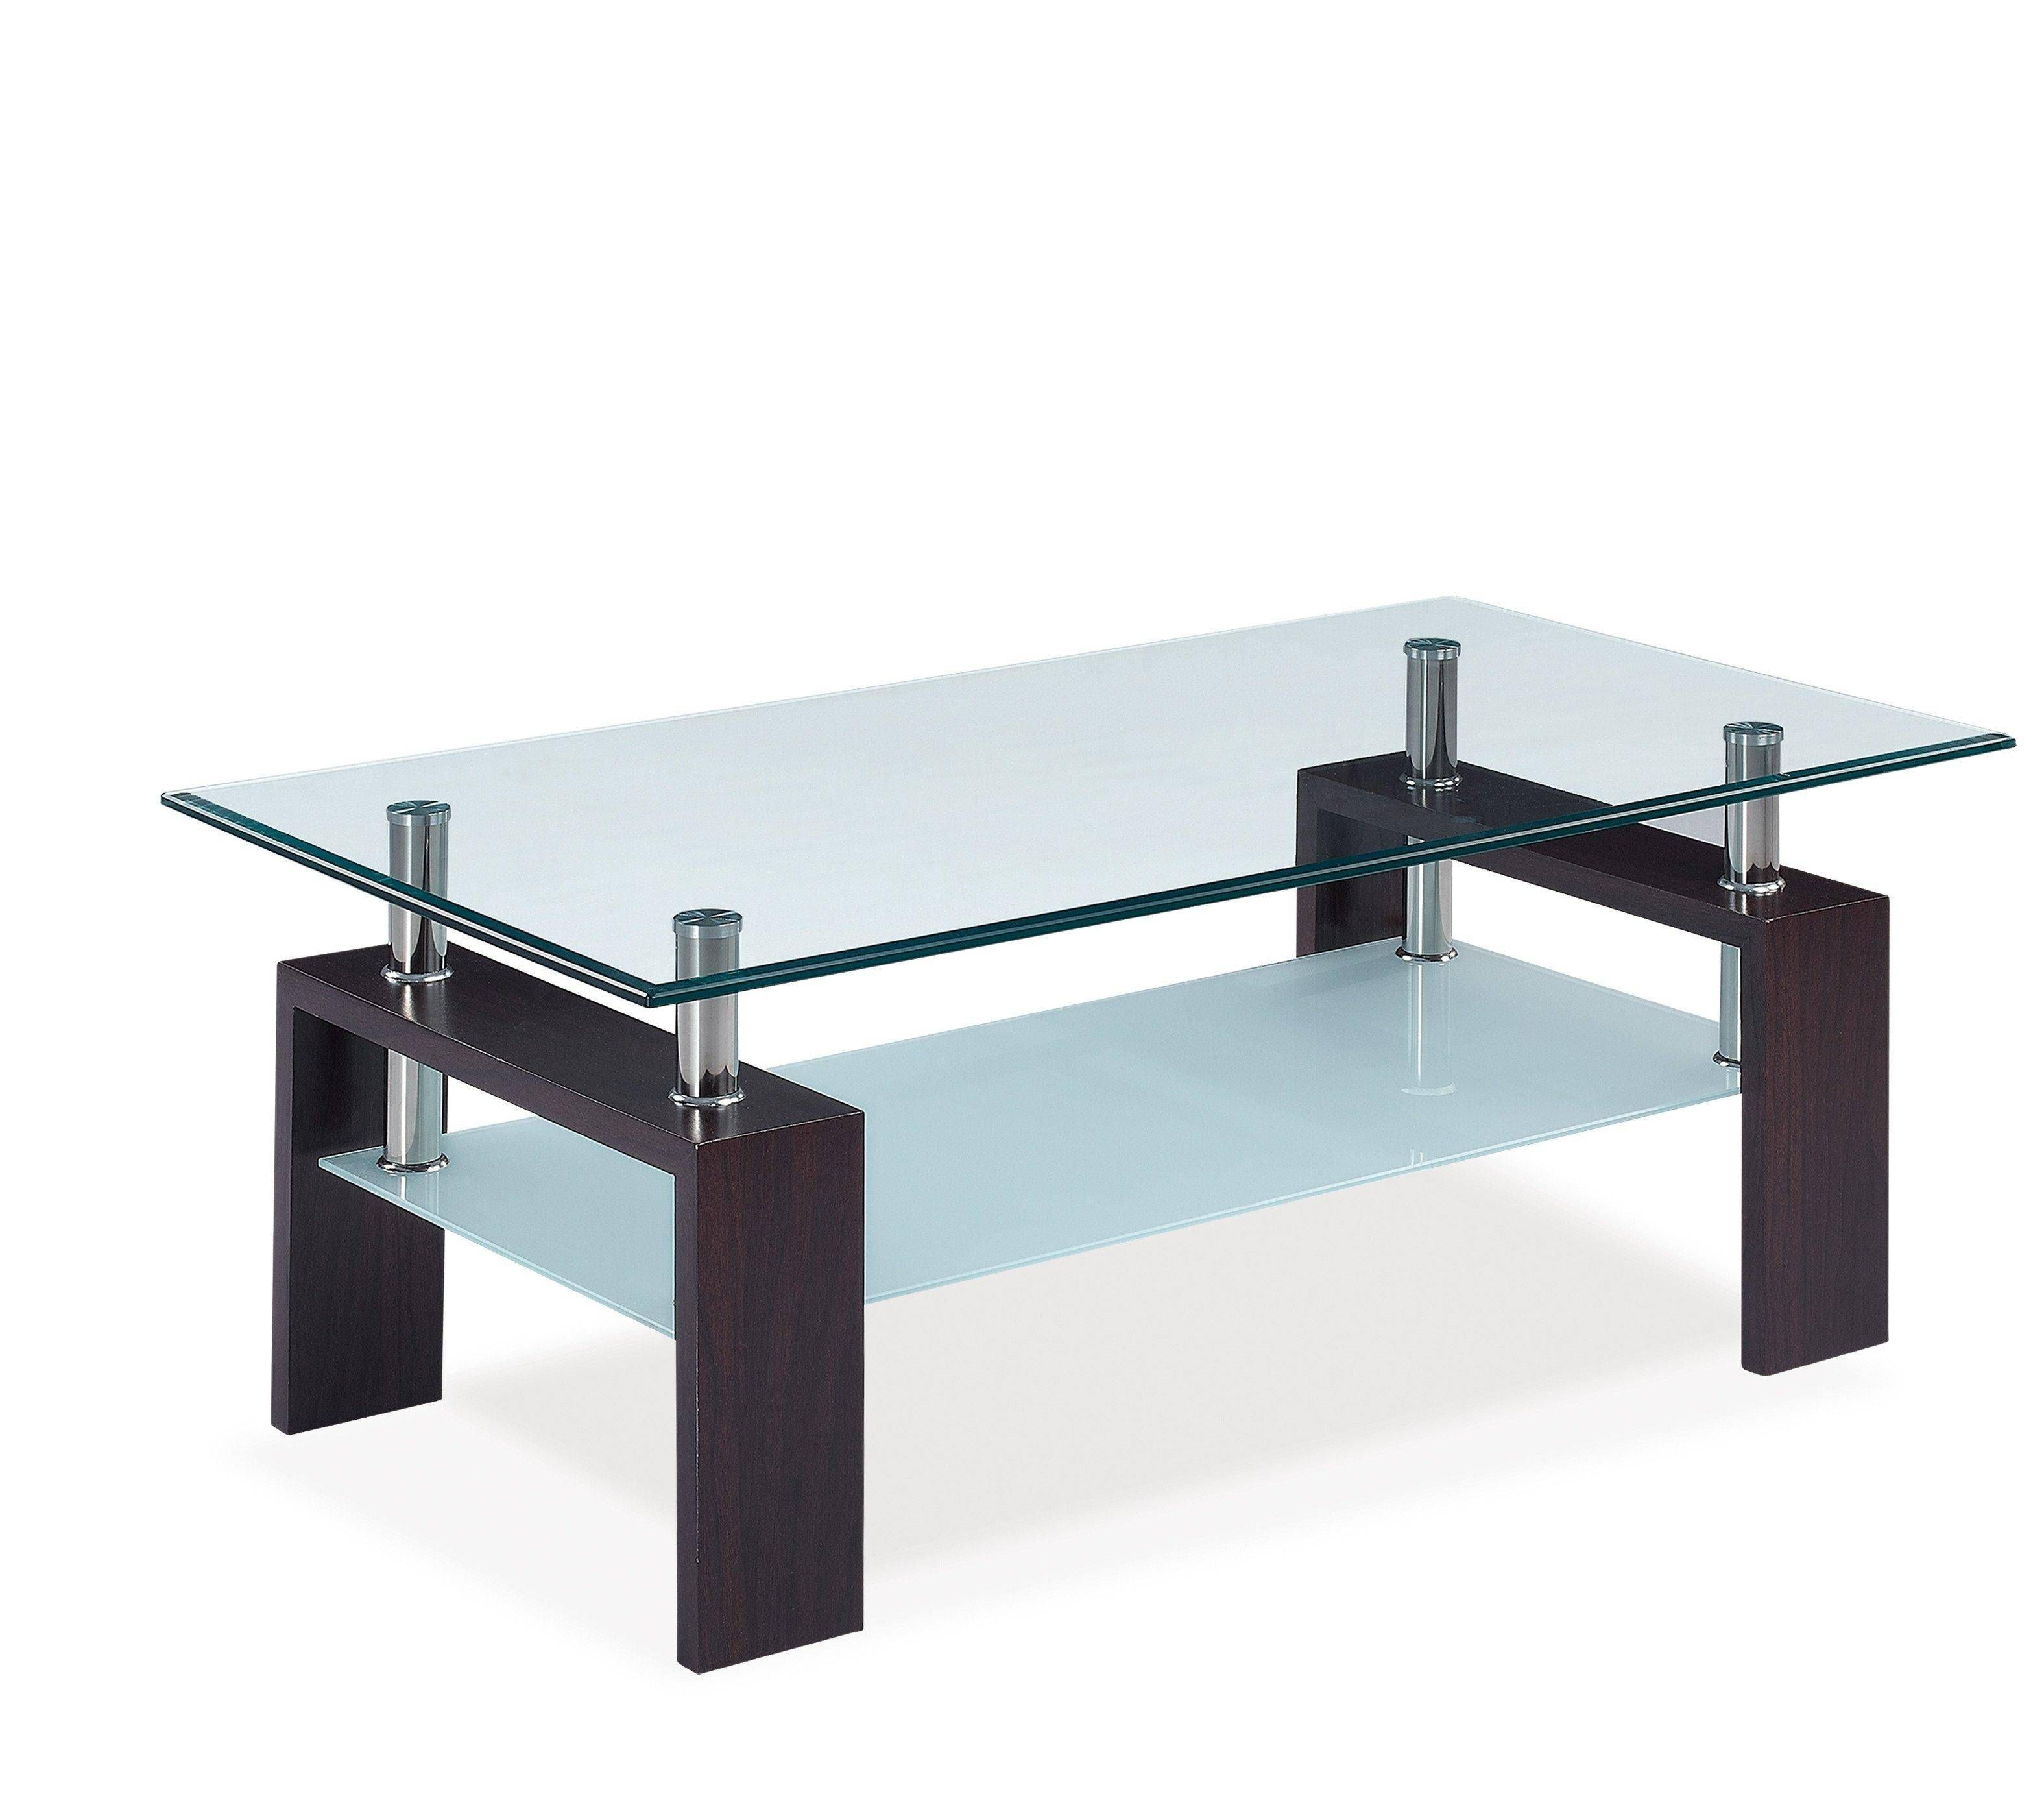 Wenge Glass Top Occasional Table Set 2 Pcs T646ct Et Wenge Global United T646ct 2pc Rectangular Glass Coffee Table Global Furniture Global Furniture Usa [ 2768 x 3151 Pixel ]